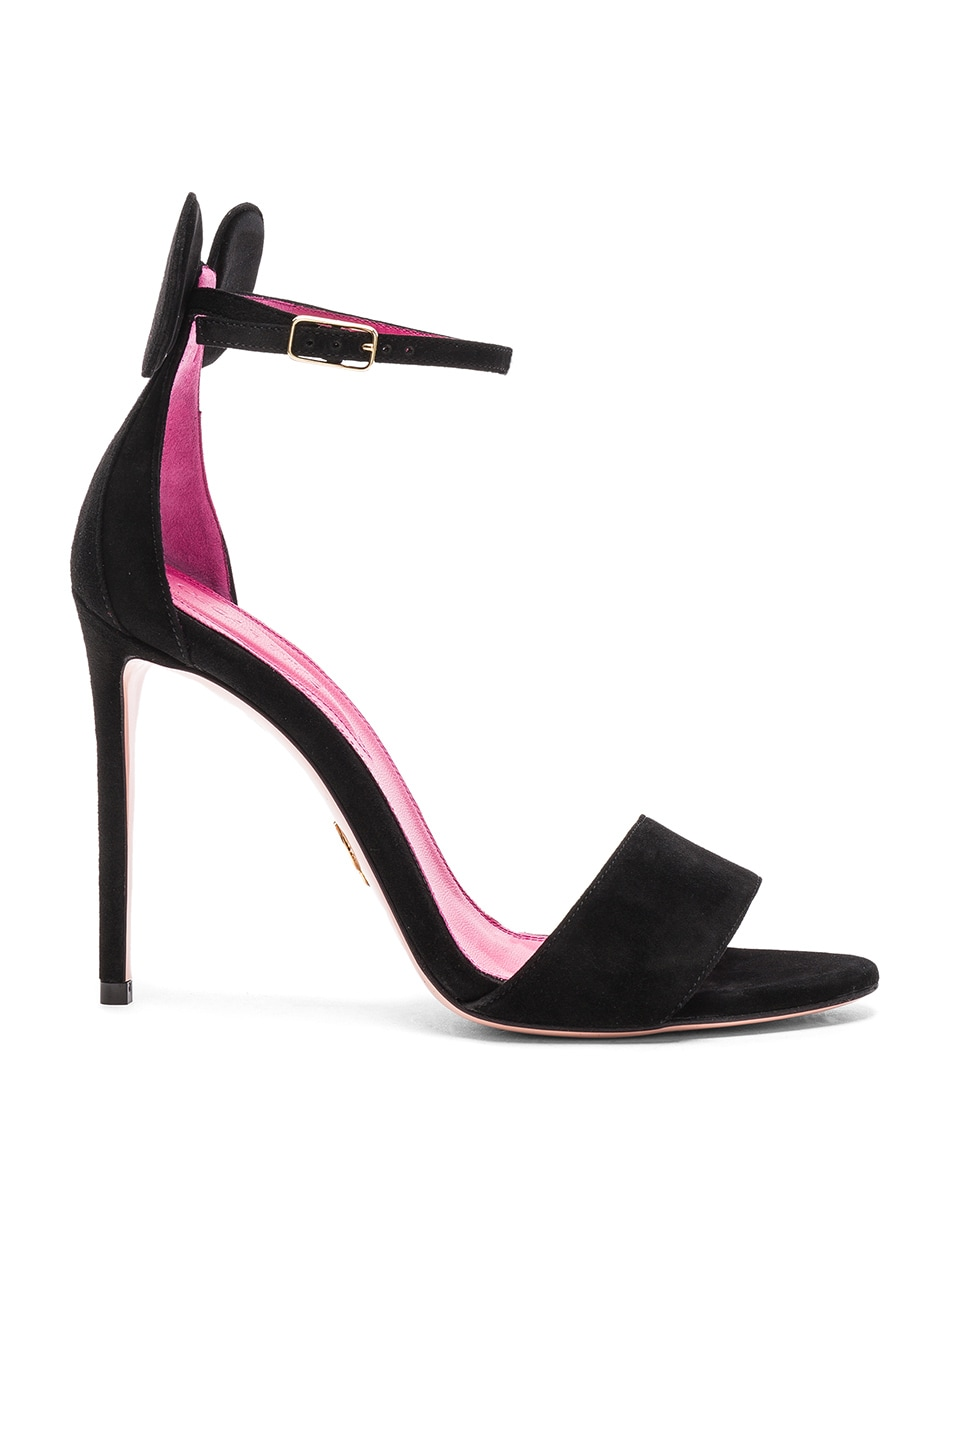 Image 1 of Oscar Tiye Suede Minnie Sandals in Black Suede